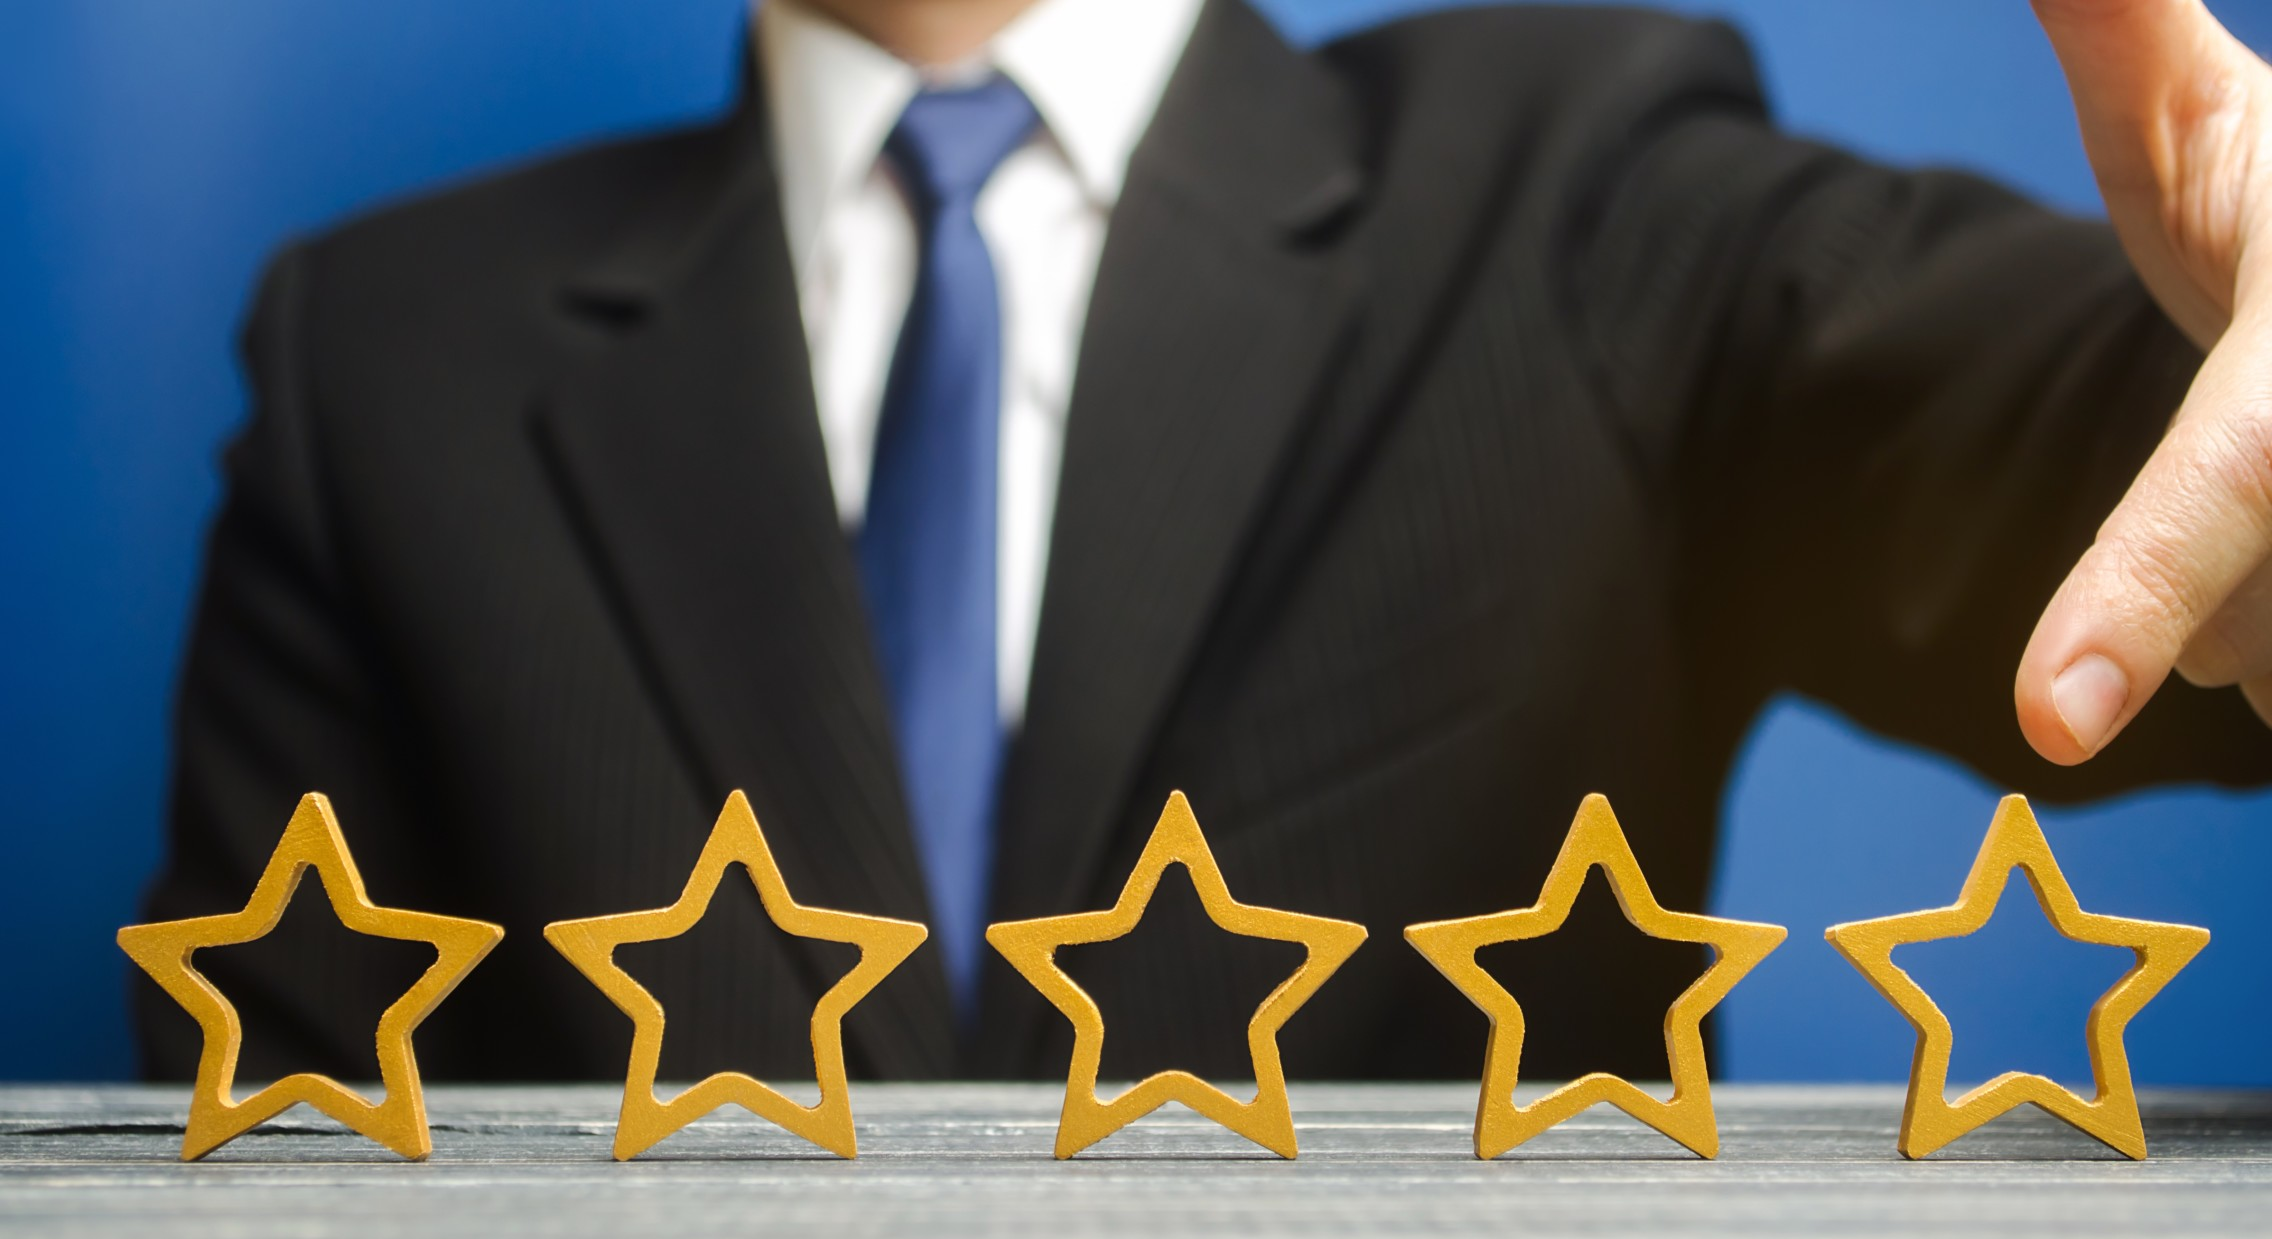 How to Find and Use Customer Reviews